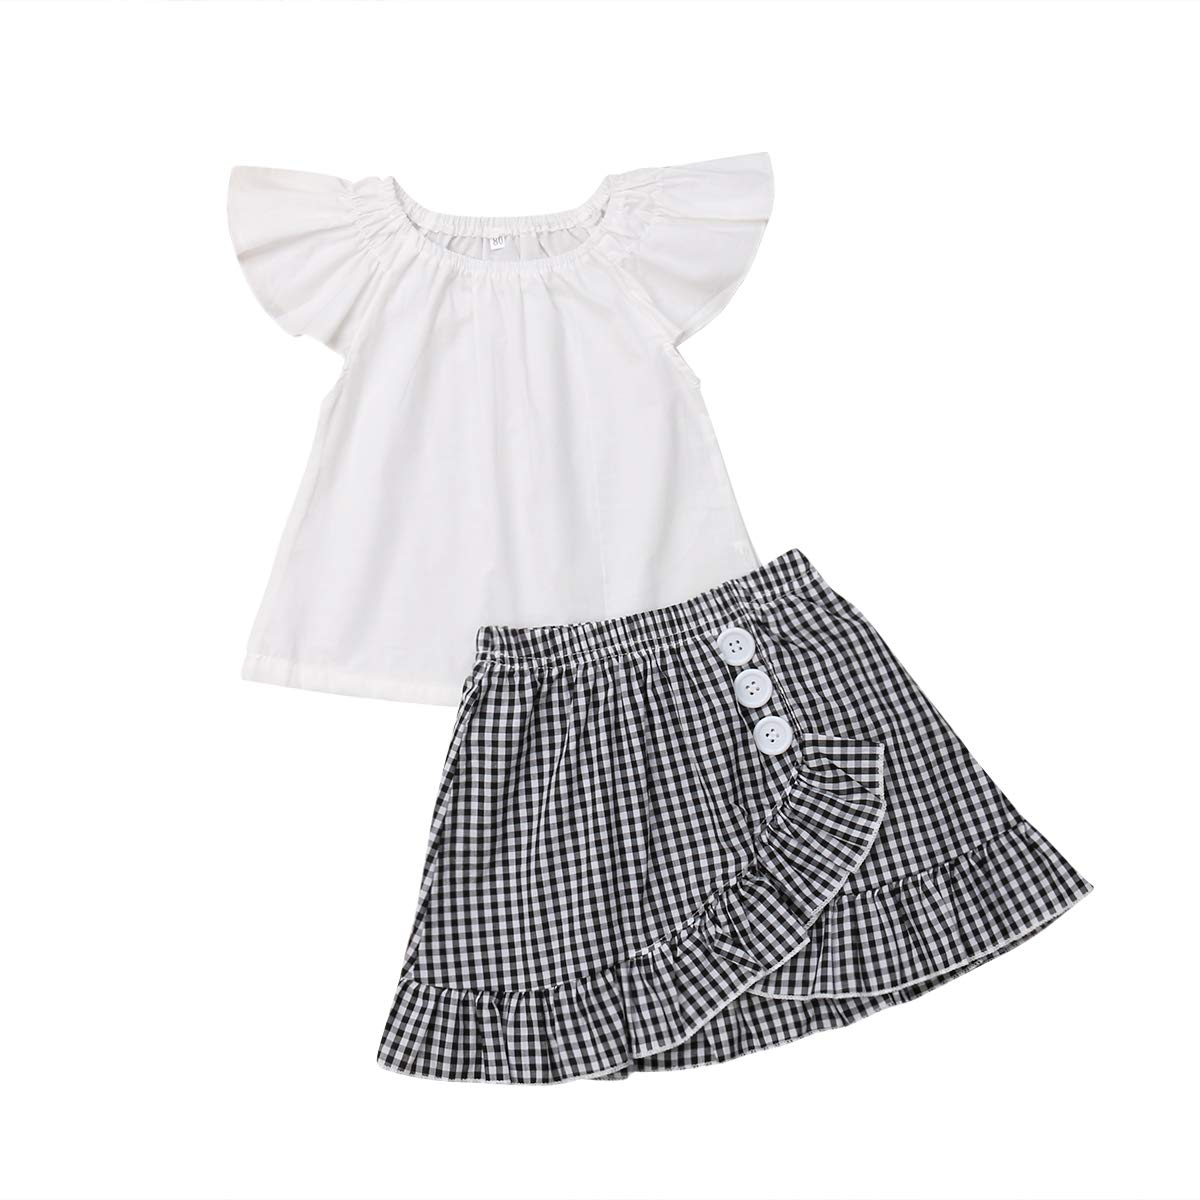 Toddler Baby Girl Fly Short Sleeve T-Shirt Tops+Ruffle Plaid Skirt Outfit Set